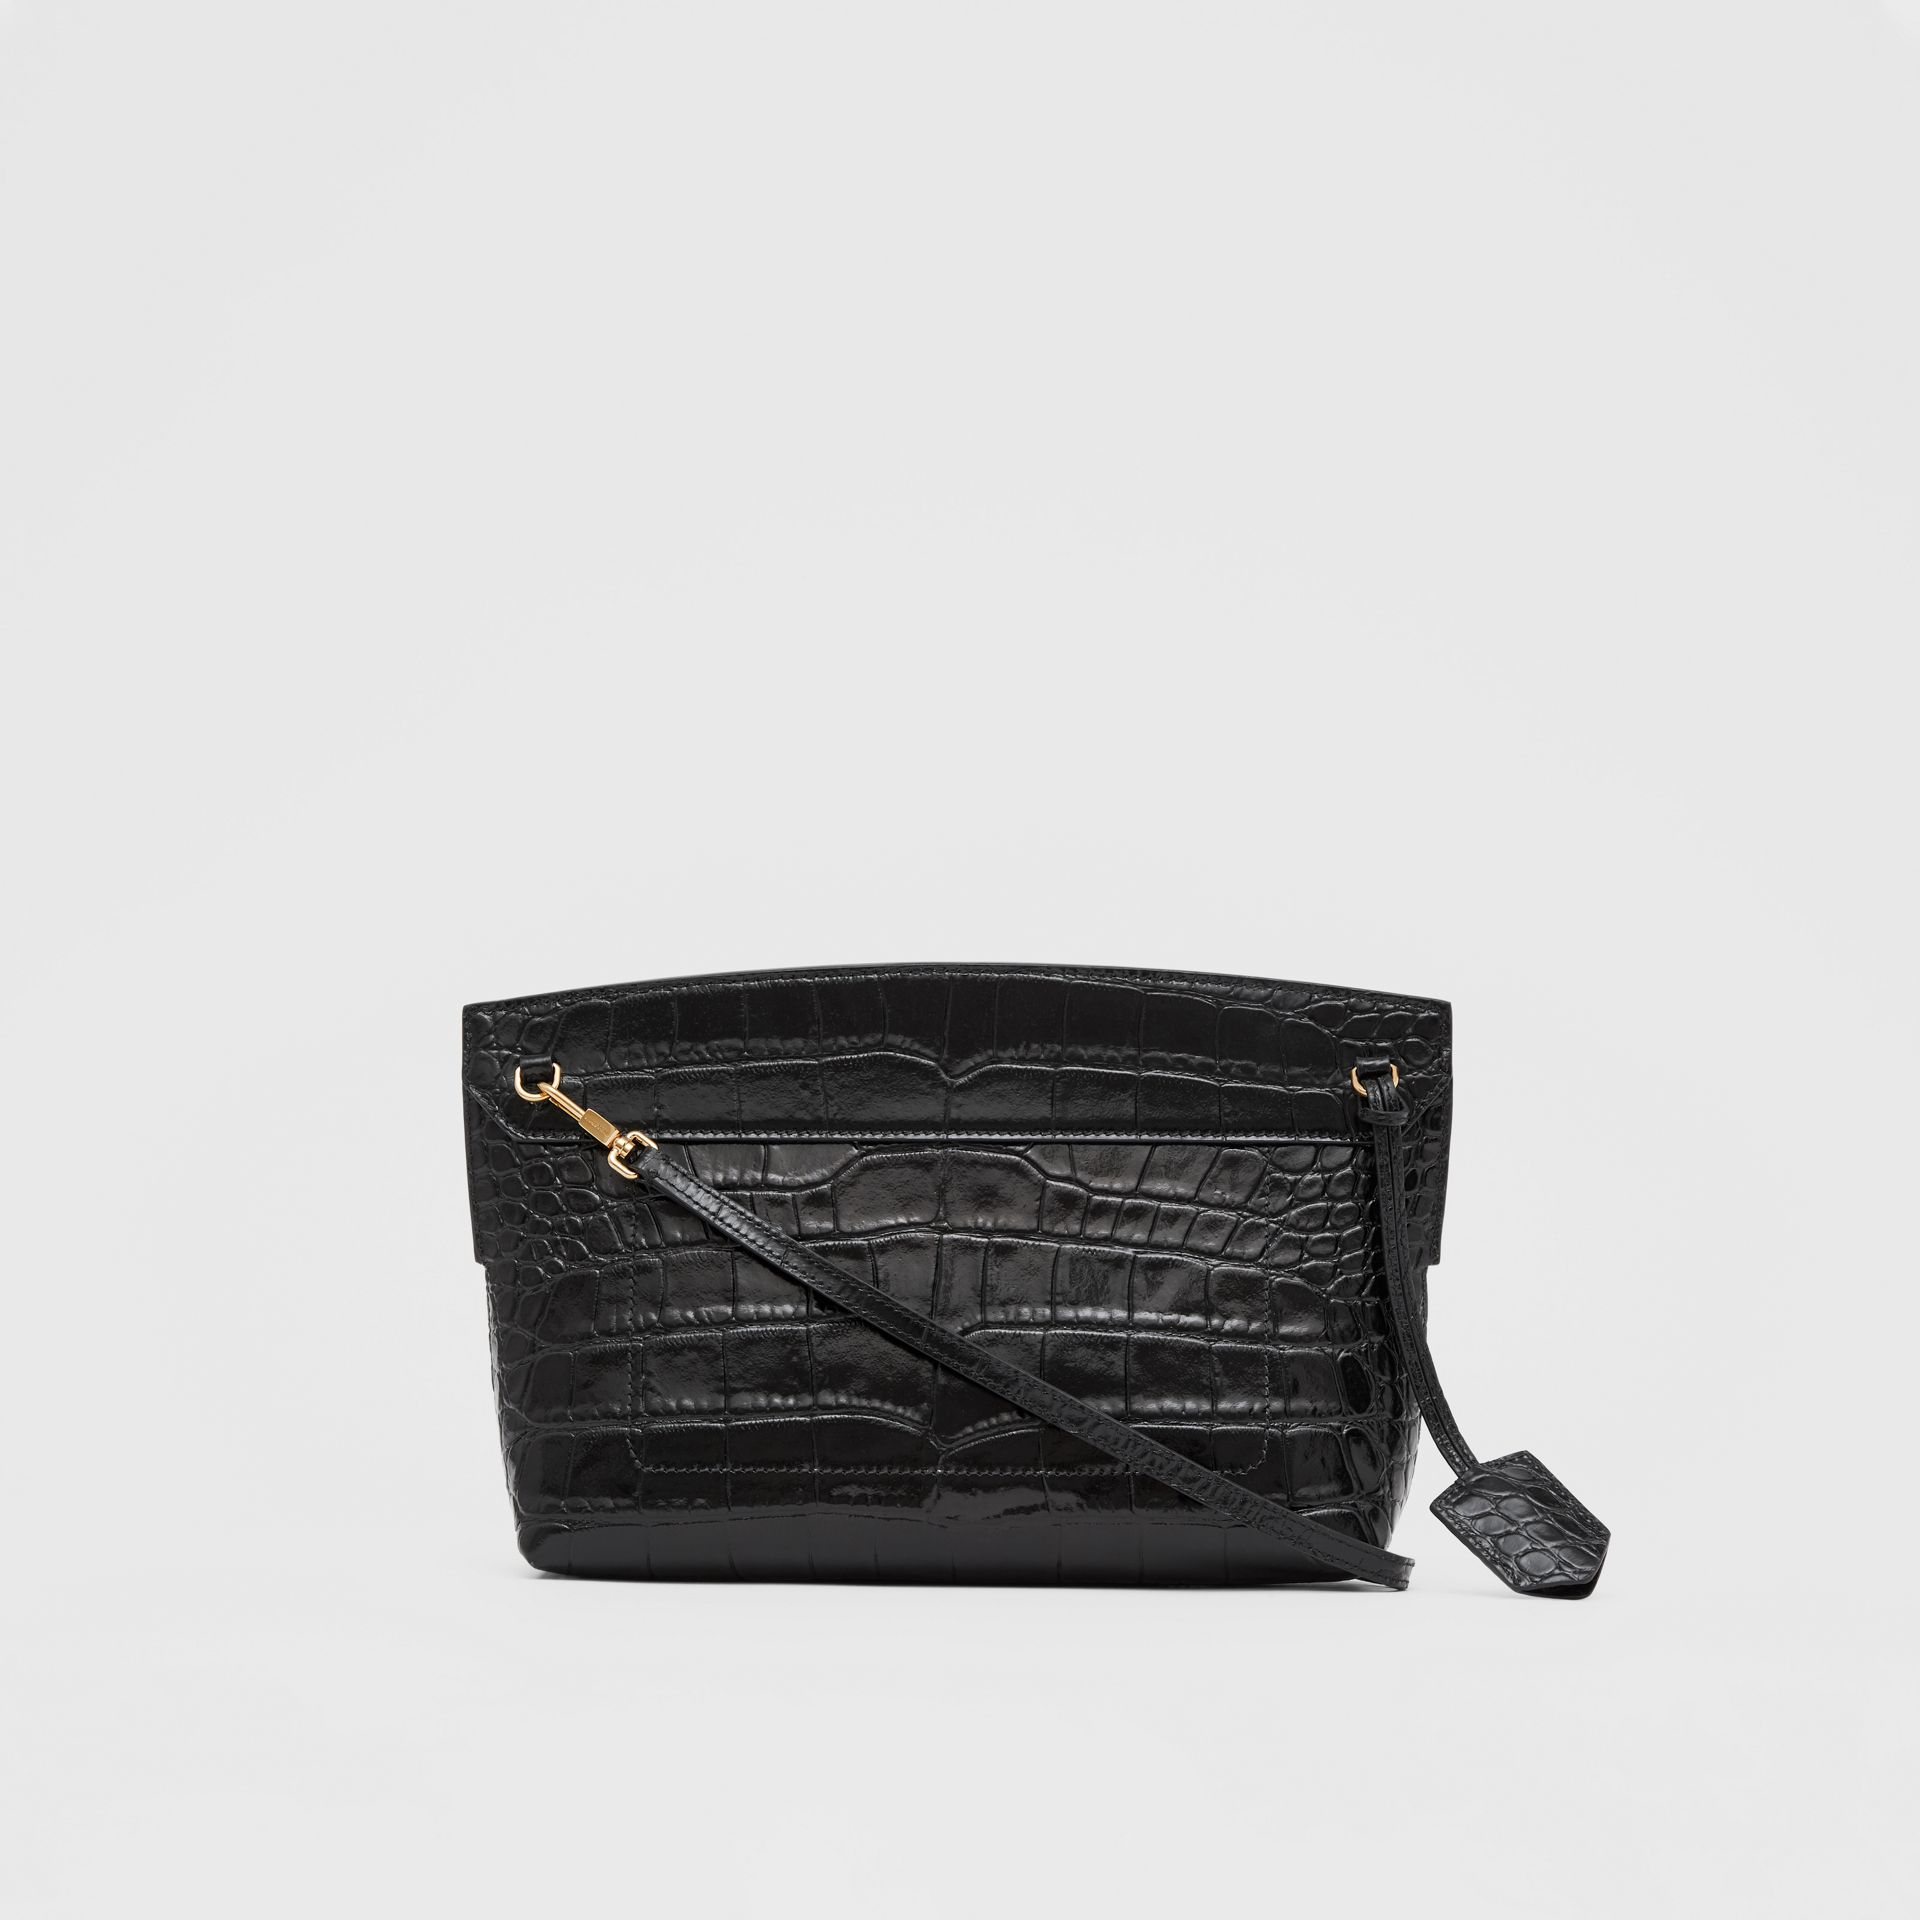 Embossed Leather Society Clutch in Black - Women | Burberry Singapore - gallery image 7